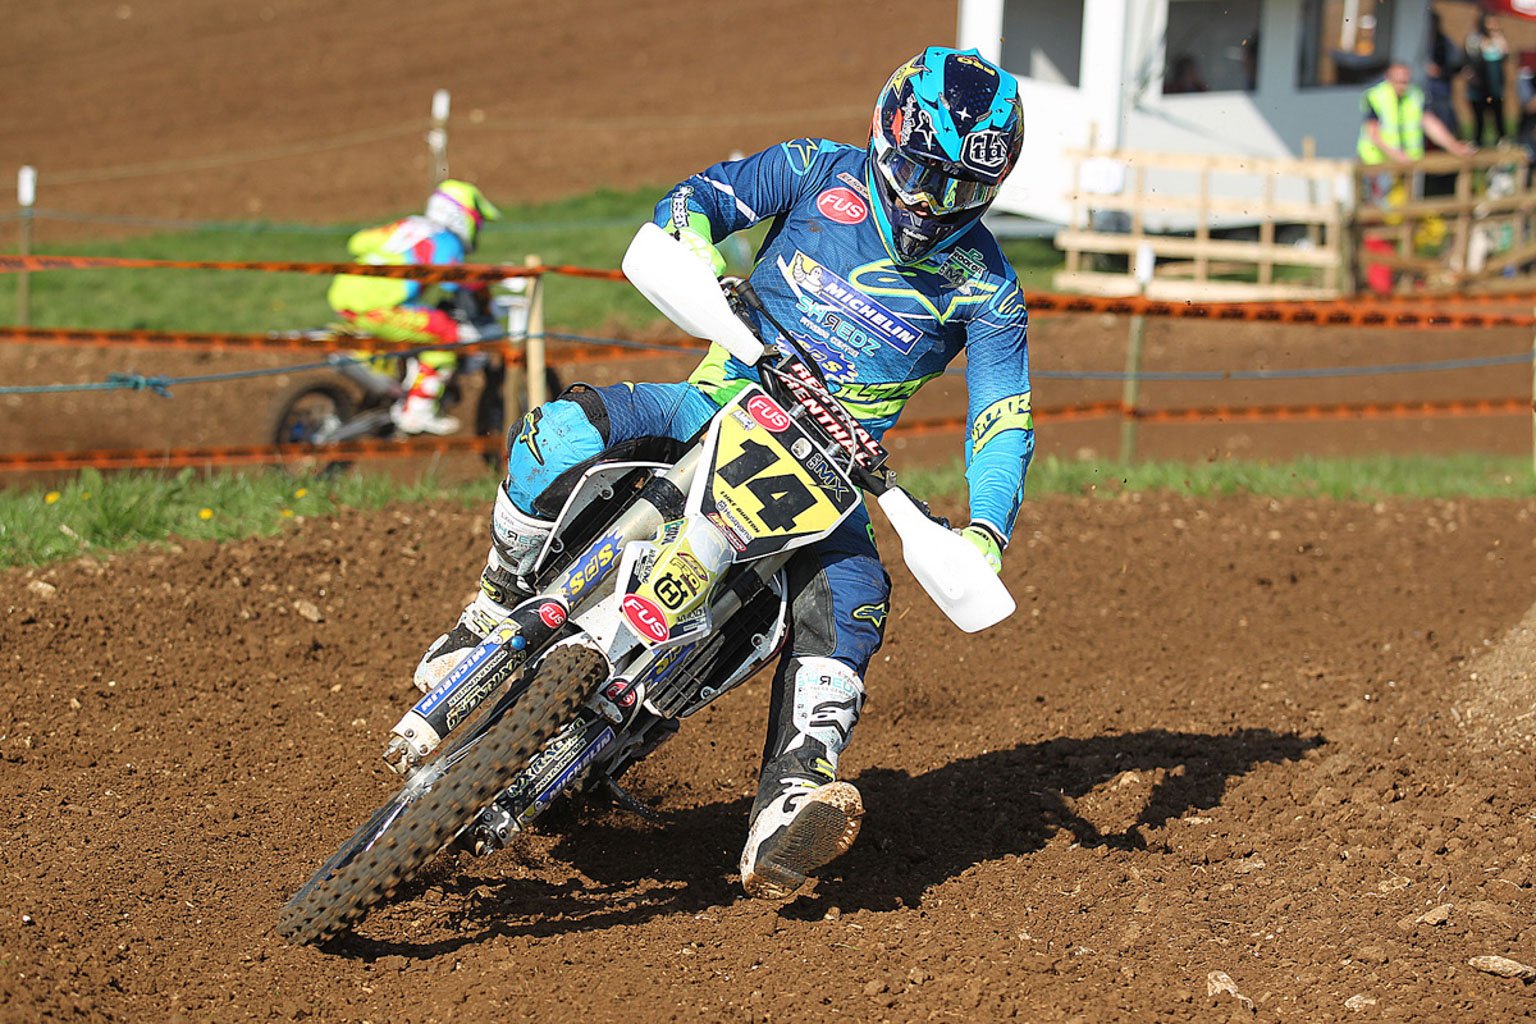 Luke Burton the MX1 winner